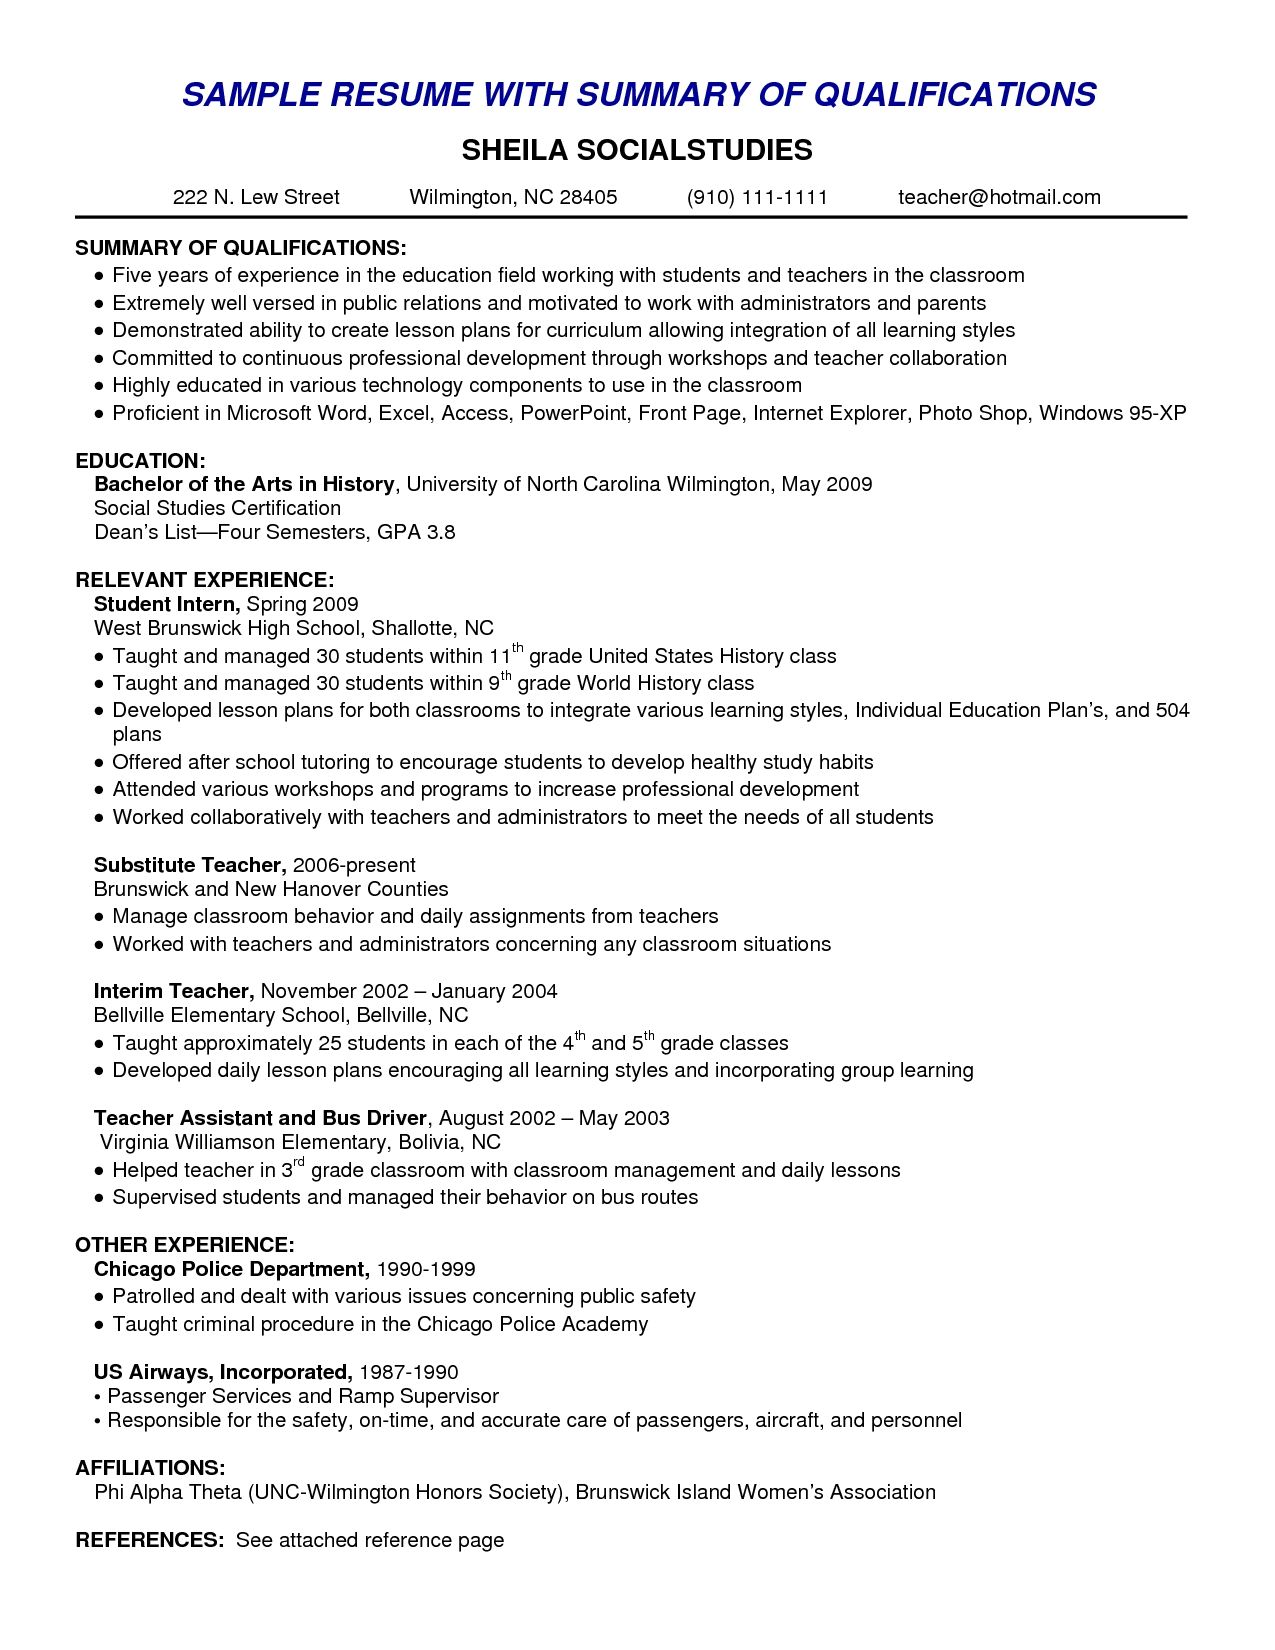 summary resume examples hola klonec co